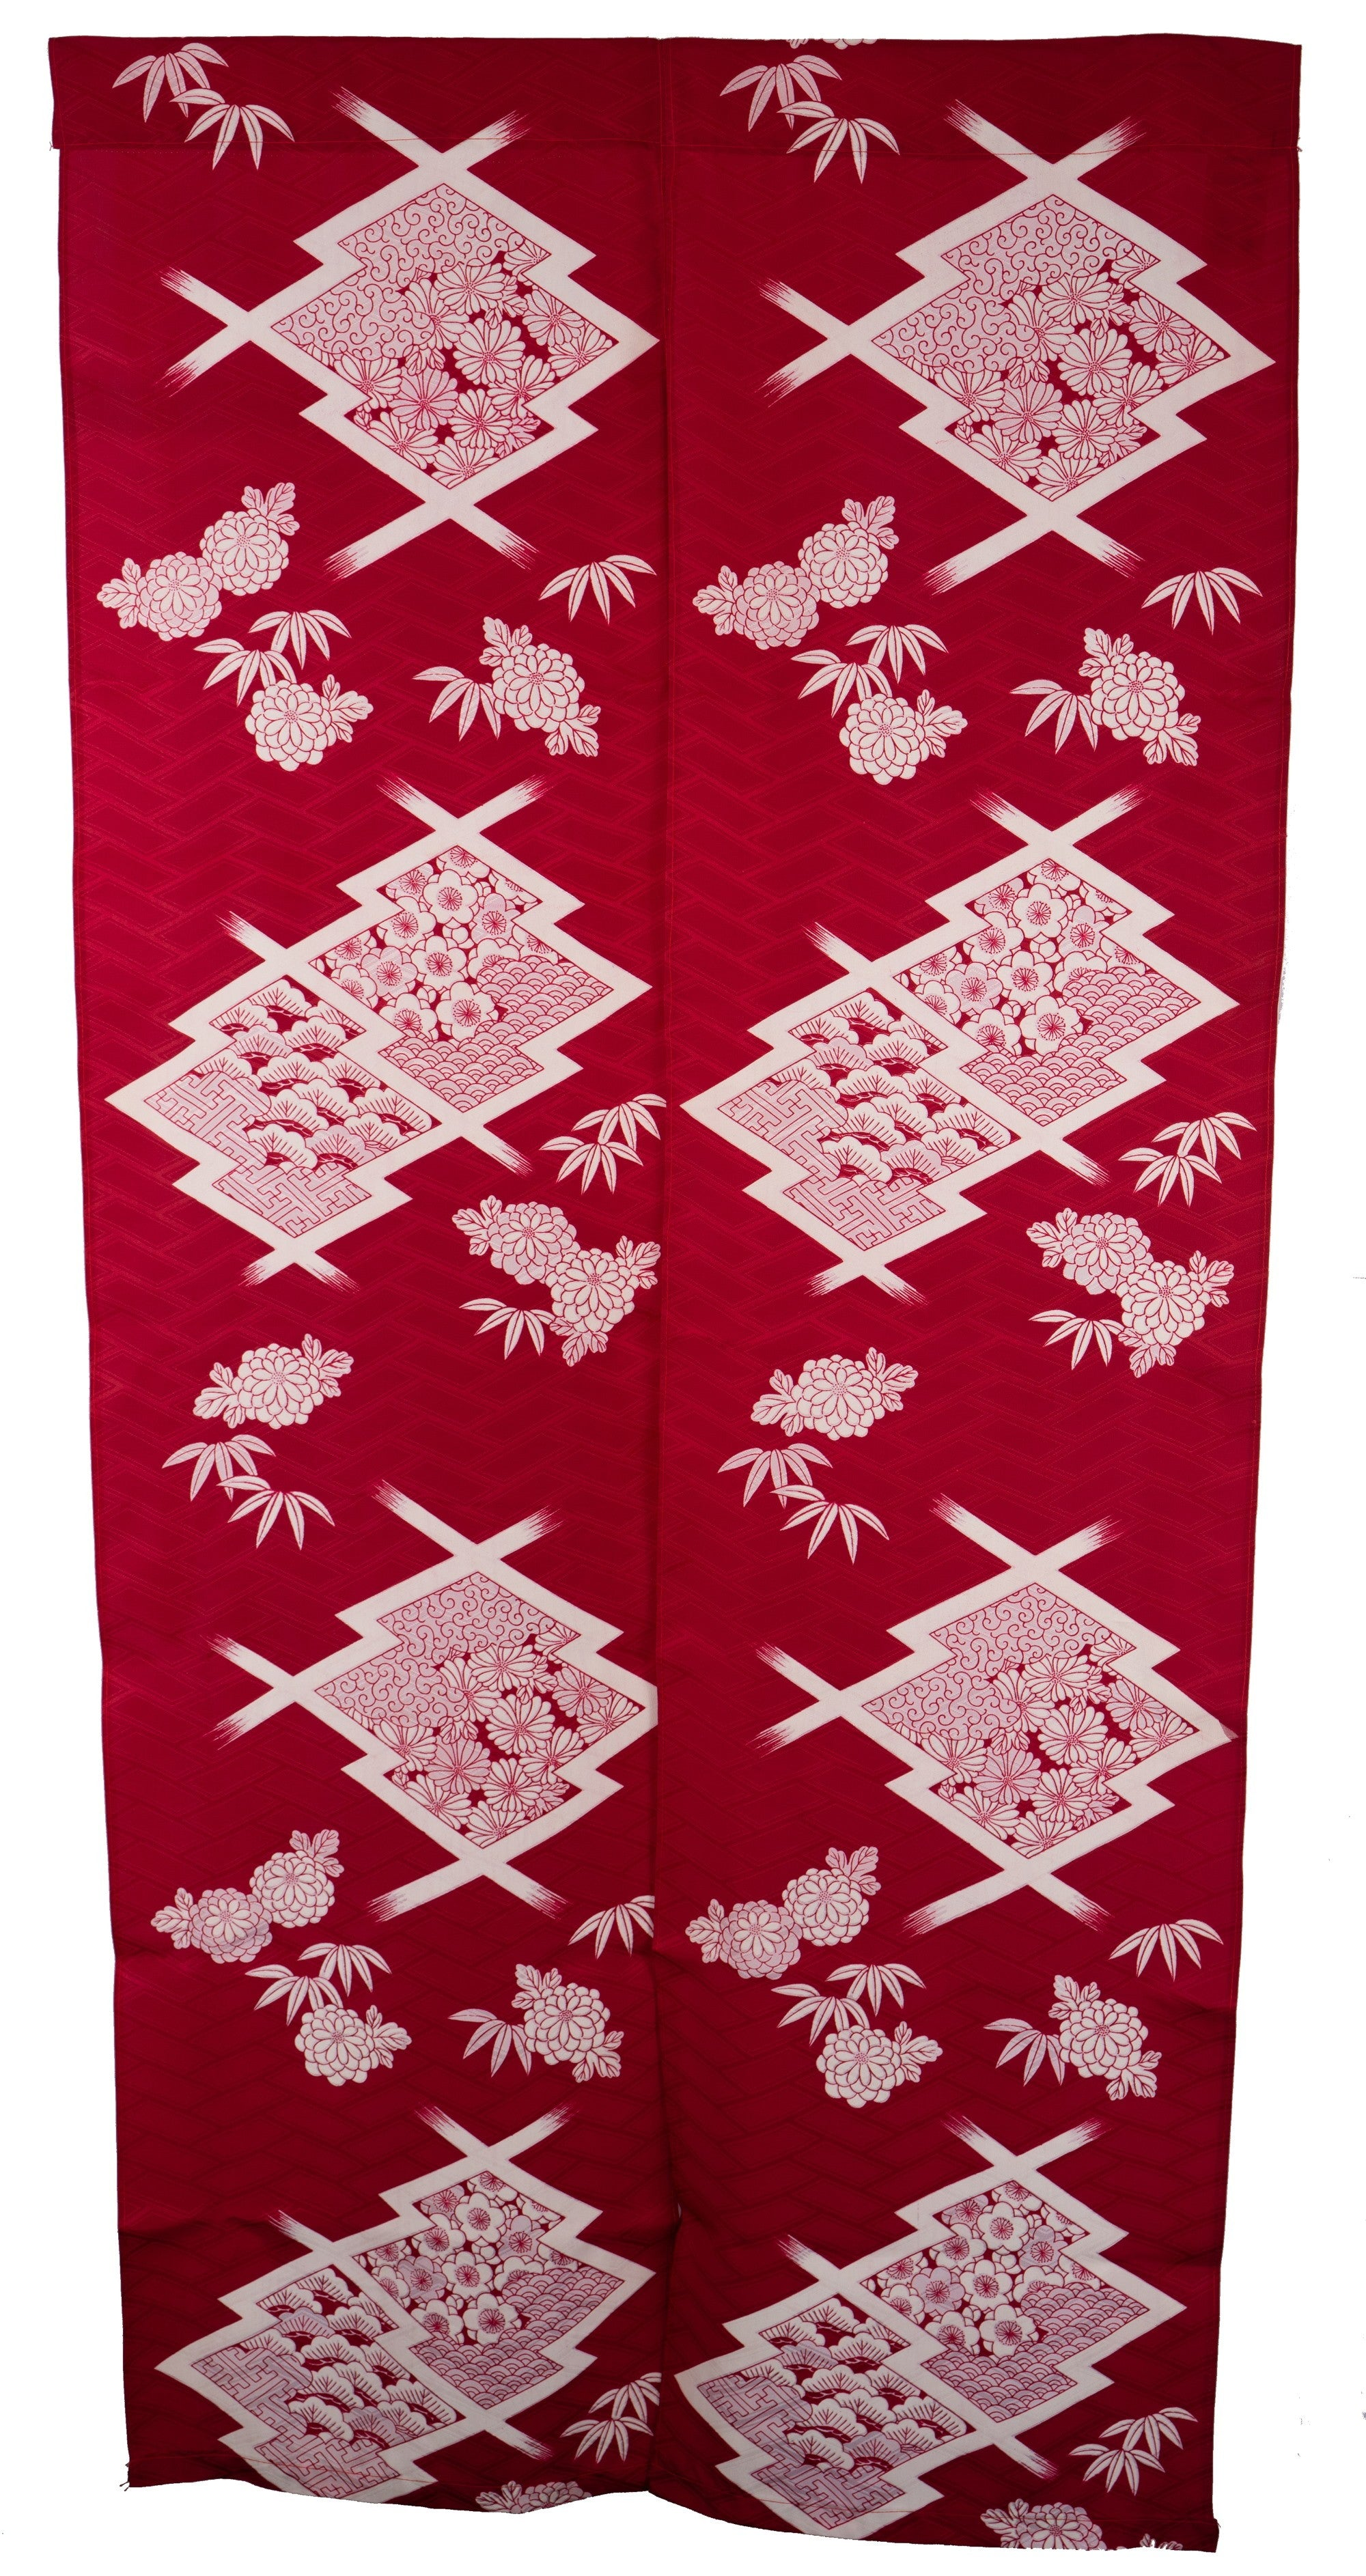 Long Polyester Kimono Noren - Waves, Clouds, Flowers, Chrysanthemums, Cherry Blossoms, Leaves, Geometric Patterns, Buddhist